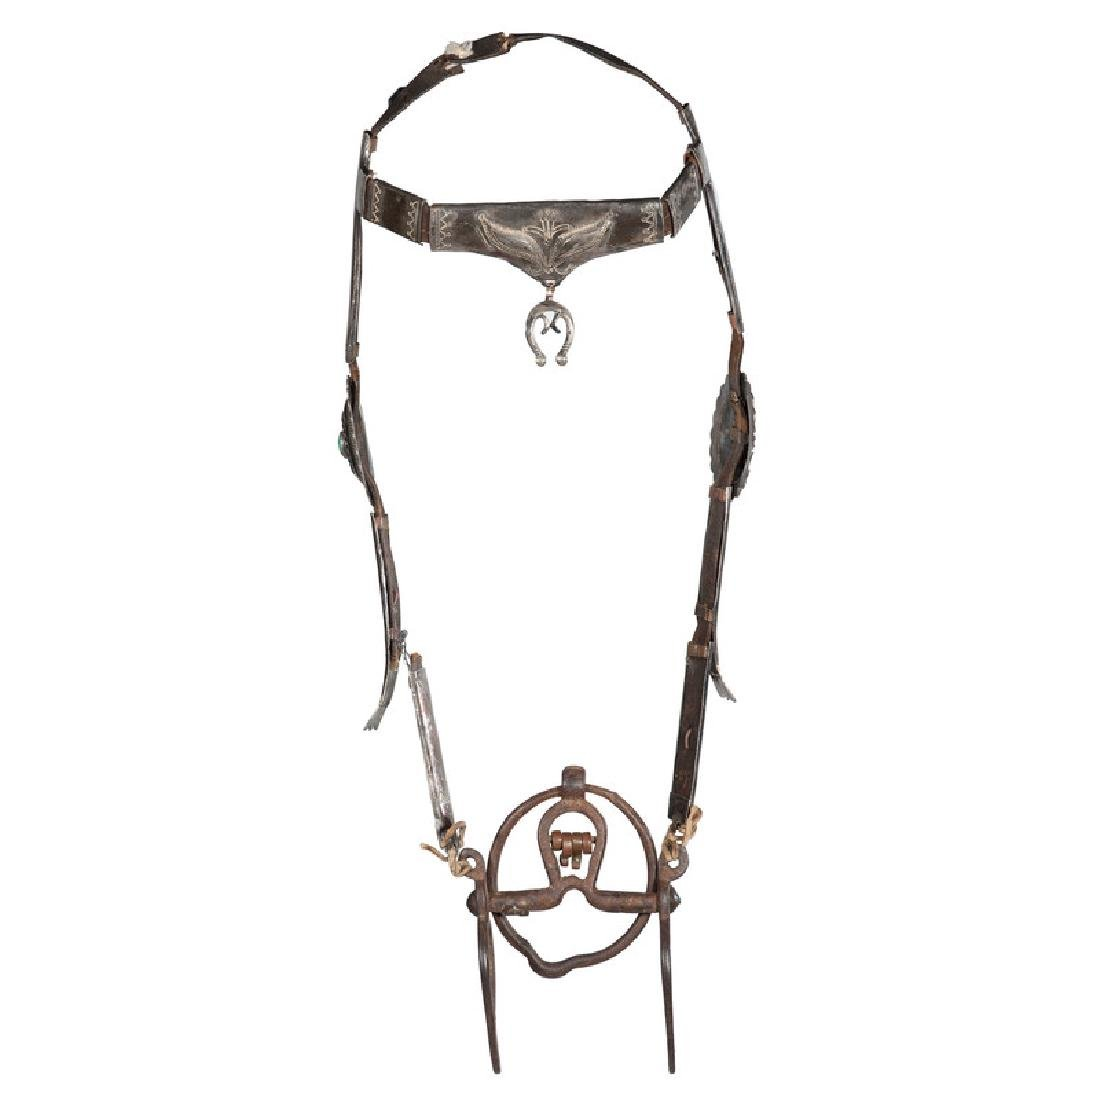 Navajo Silver Headstall with Bit